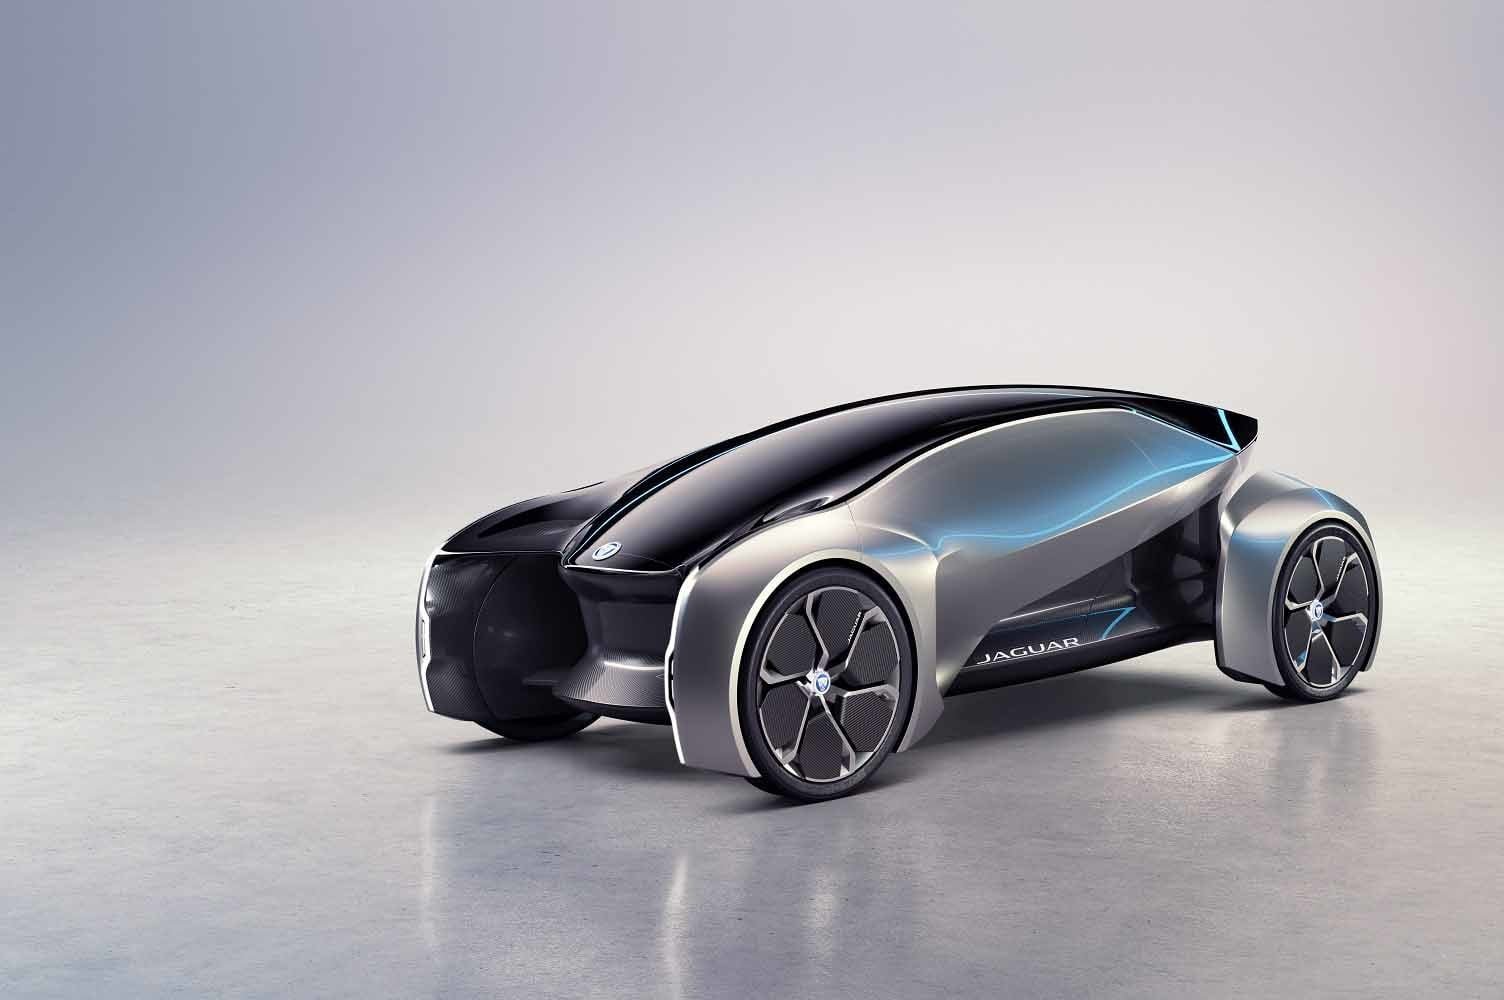 Is that a Mars Rover? Nah, it's Jaguar's crazy concept for a car in 2040